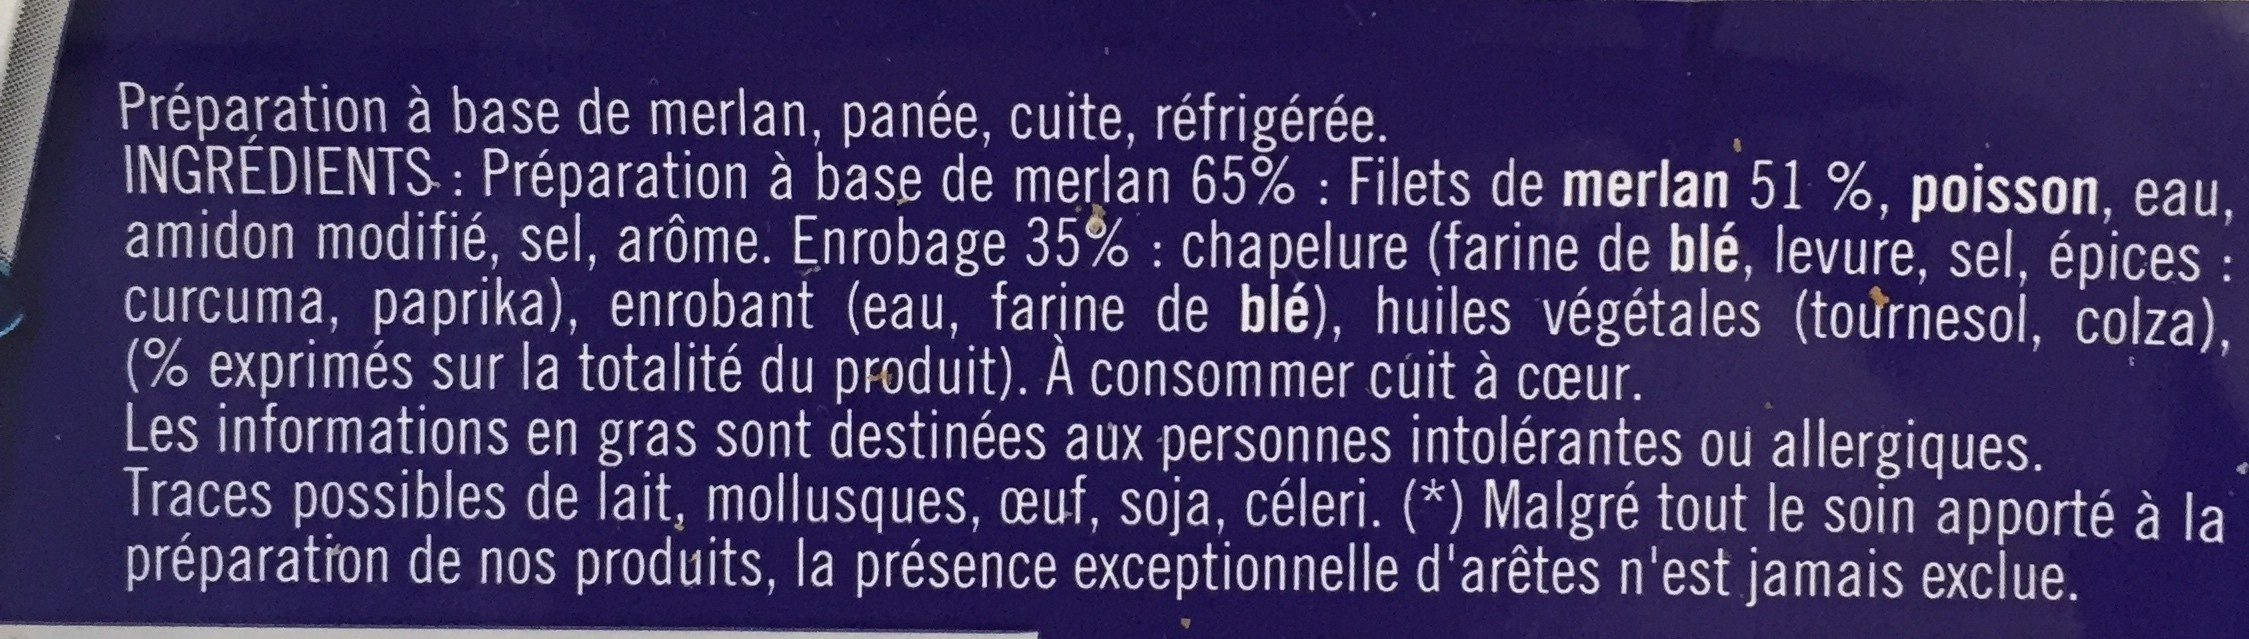 Panés au Merlan - Ingredients - fr